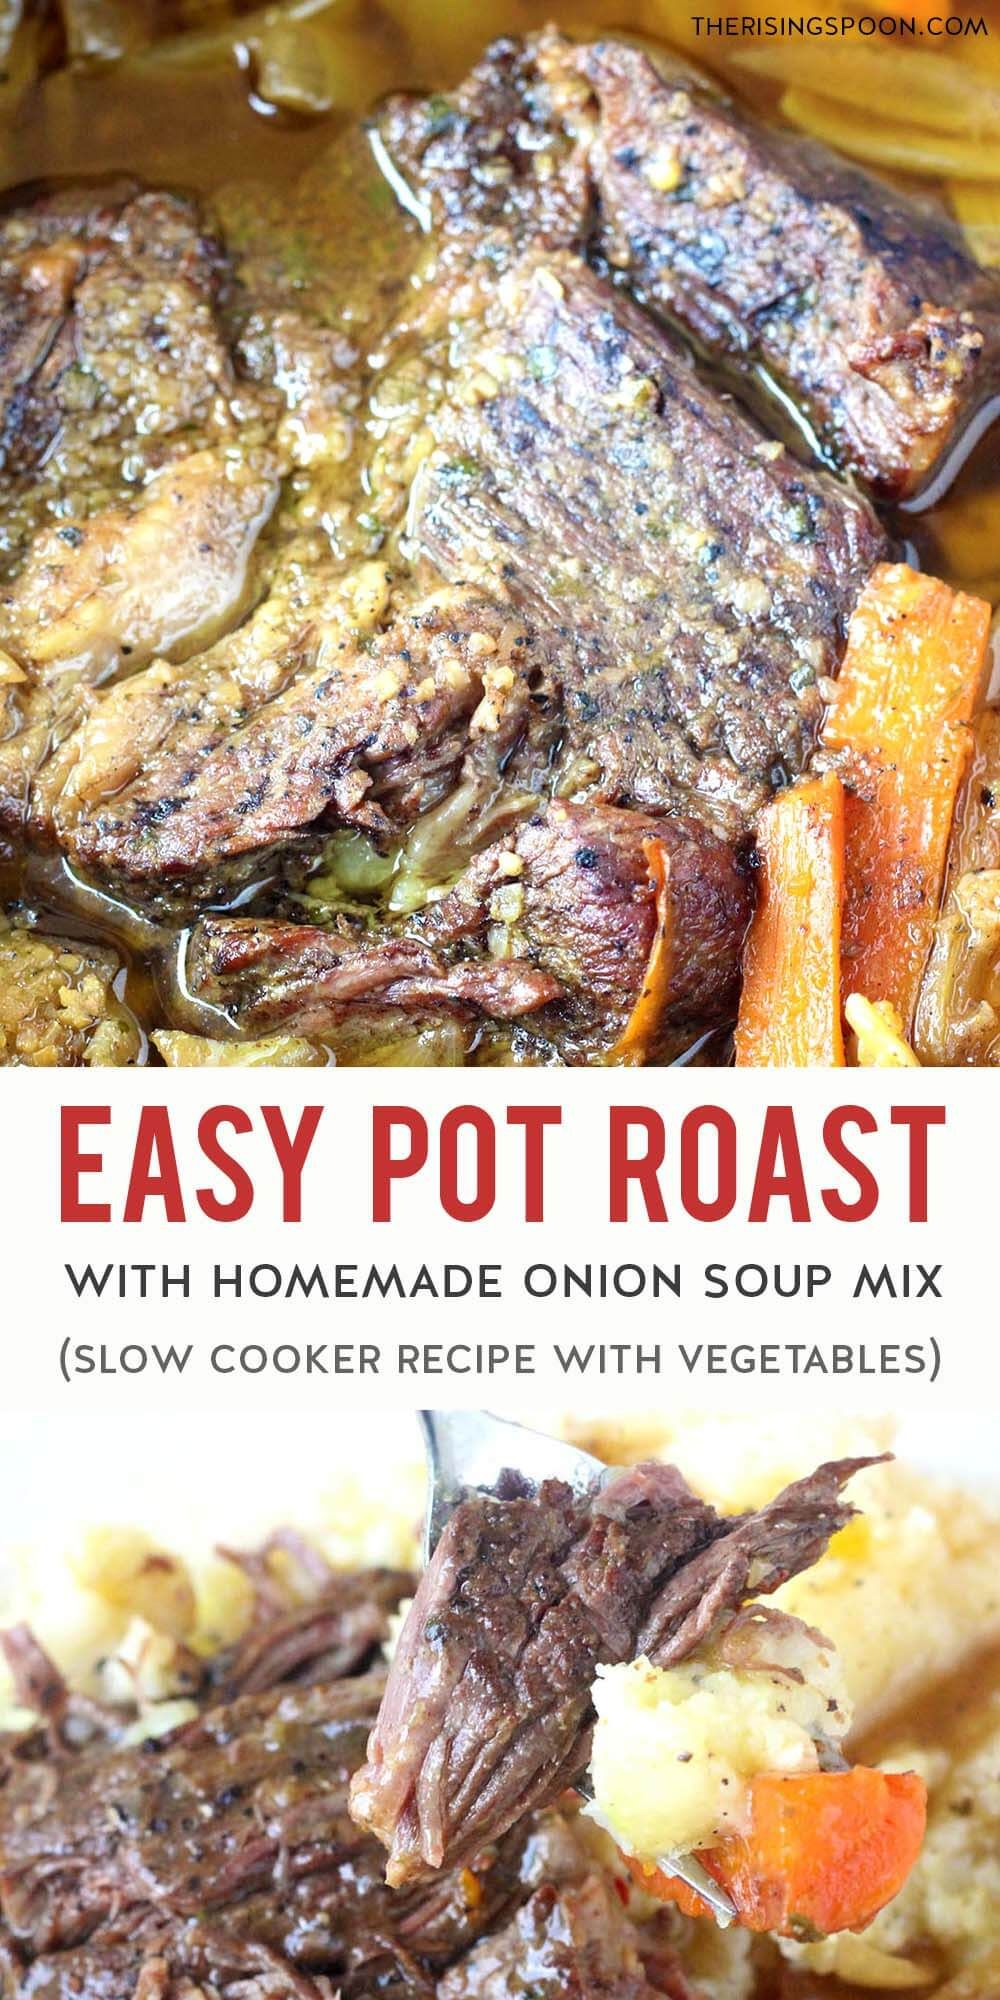 Slow Cooker Pot Roast With Homemade Onion Soup Mix Video Recipe In 2020 Homemade Onion Soup Mix Pot Roast Slow Cooker Recipes